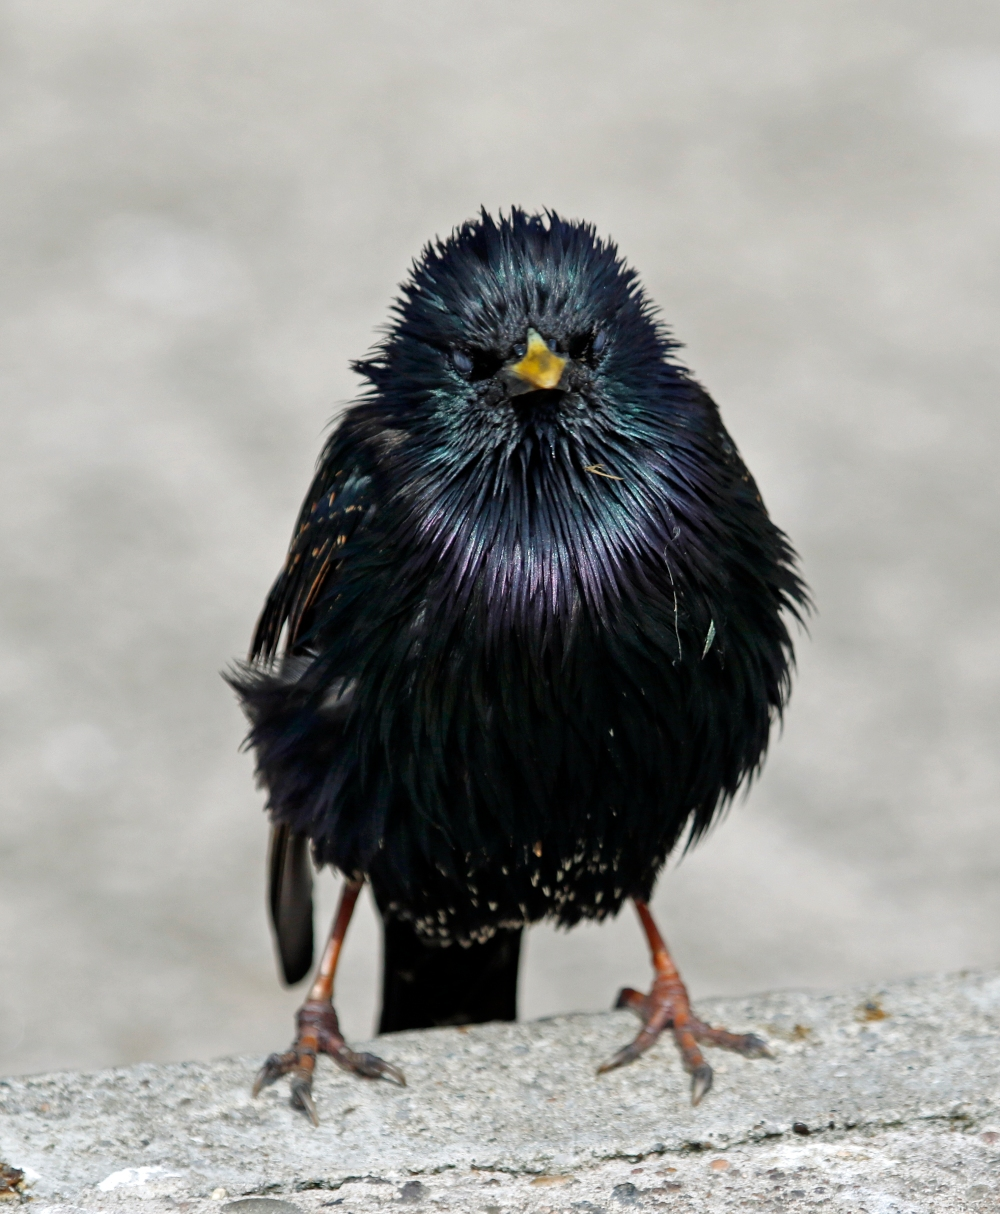 Starling with attitude